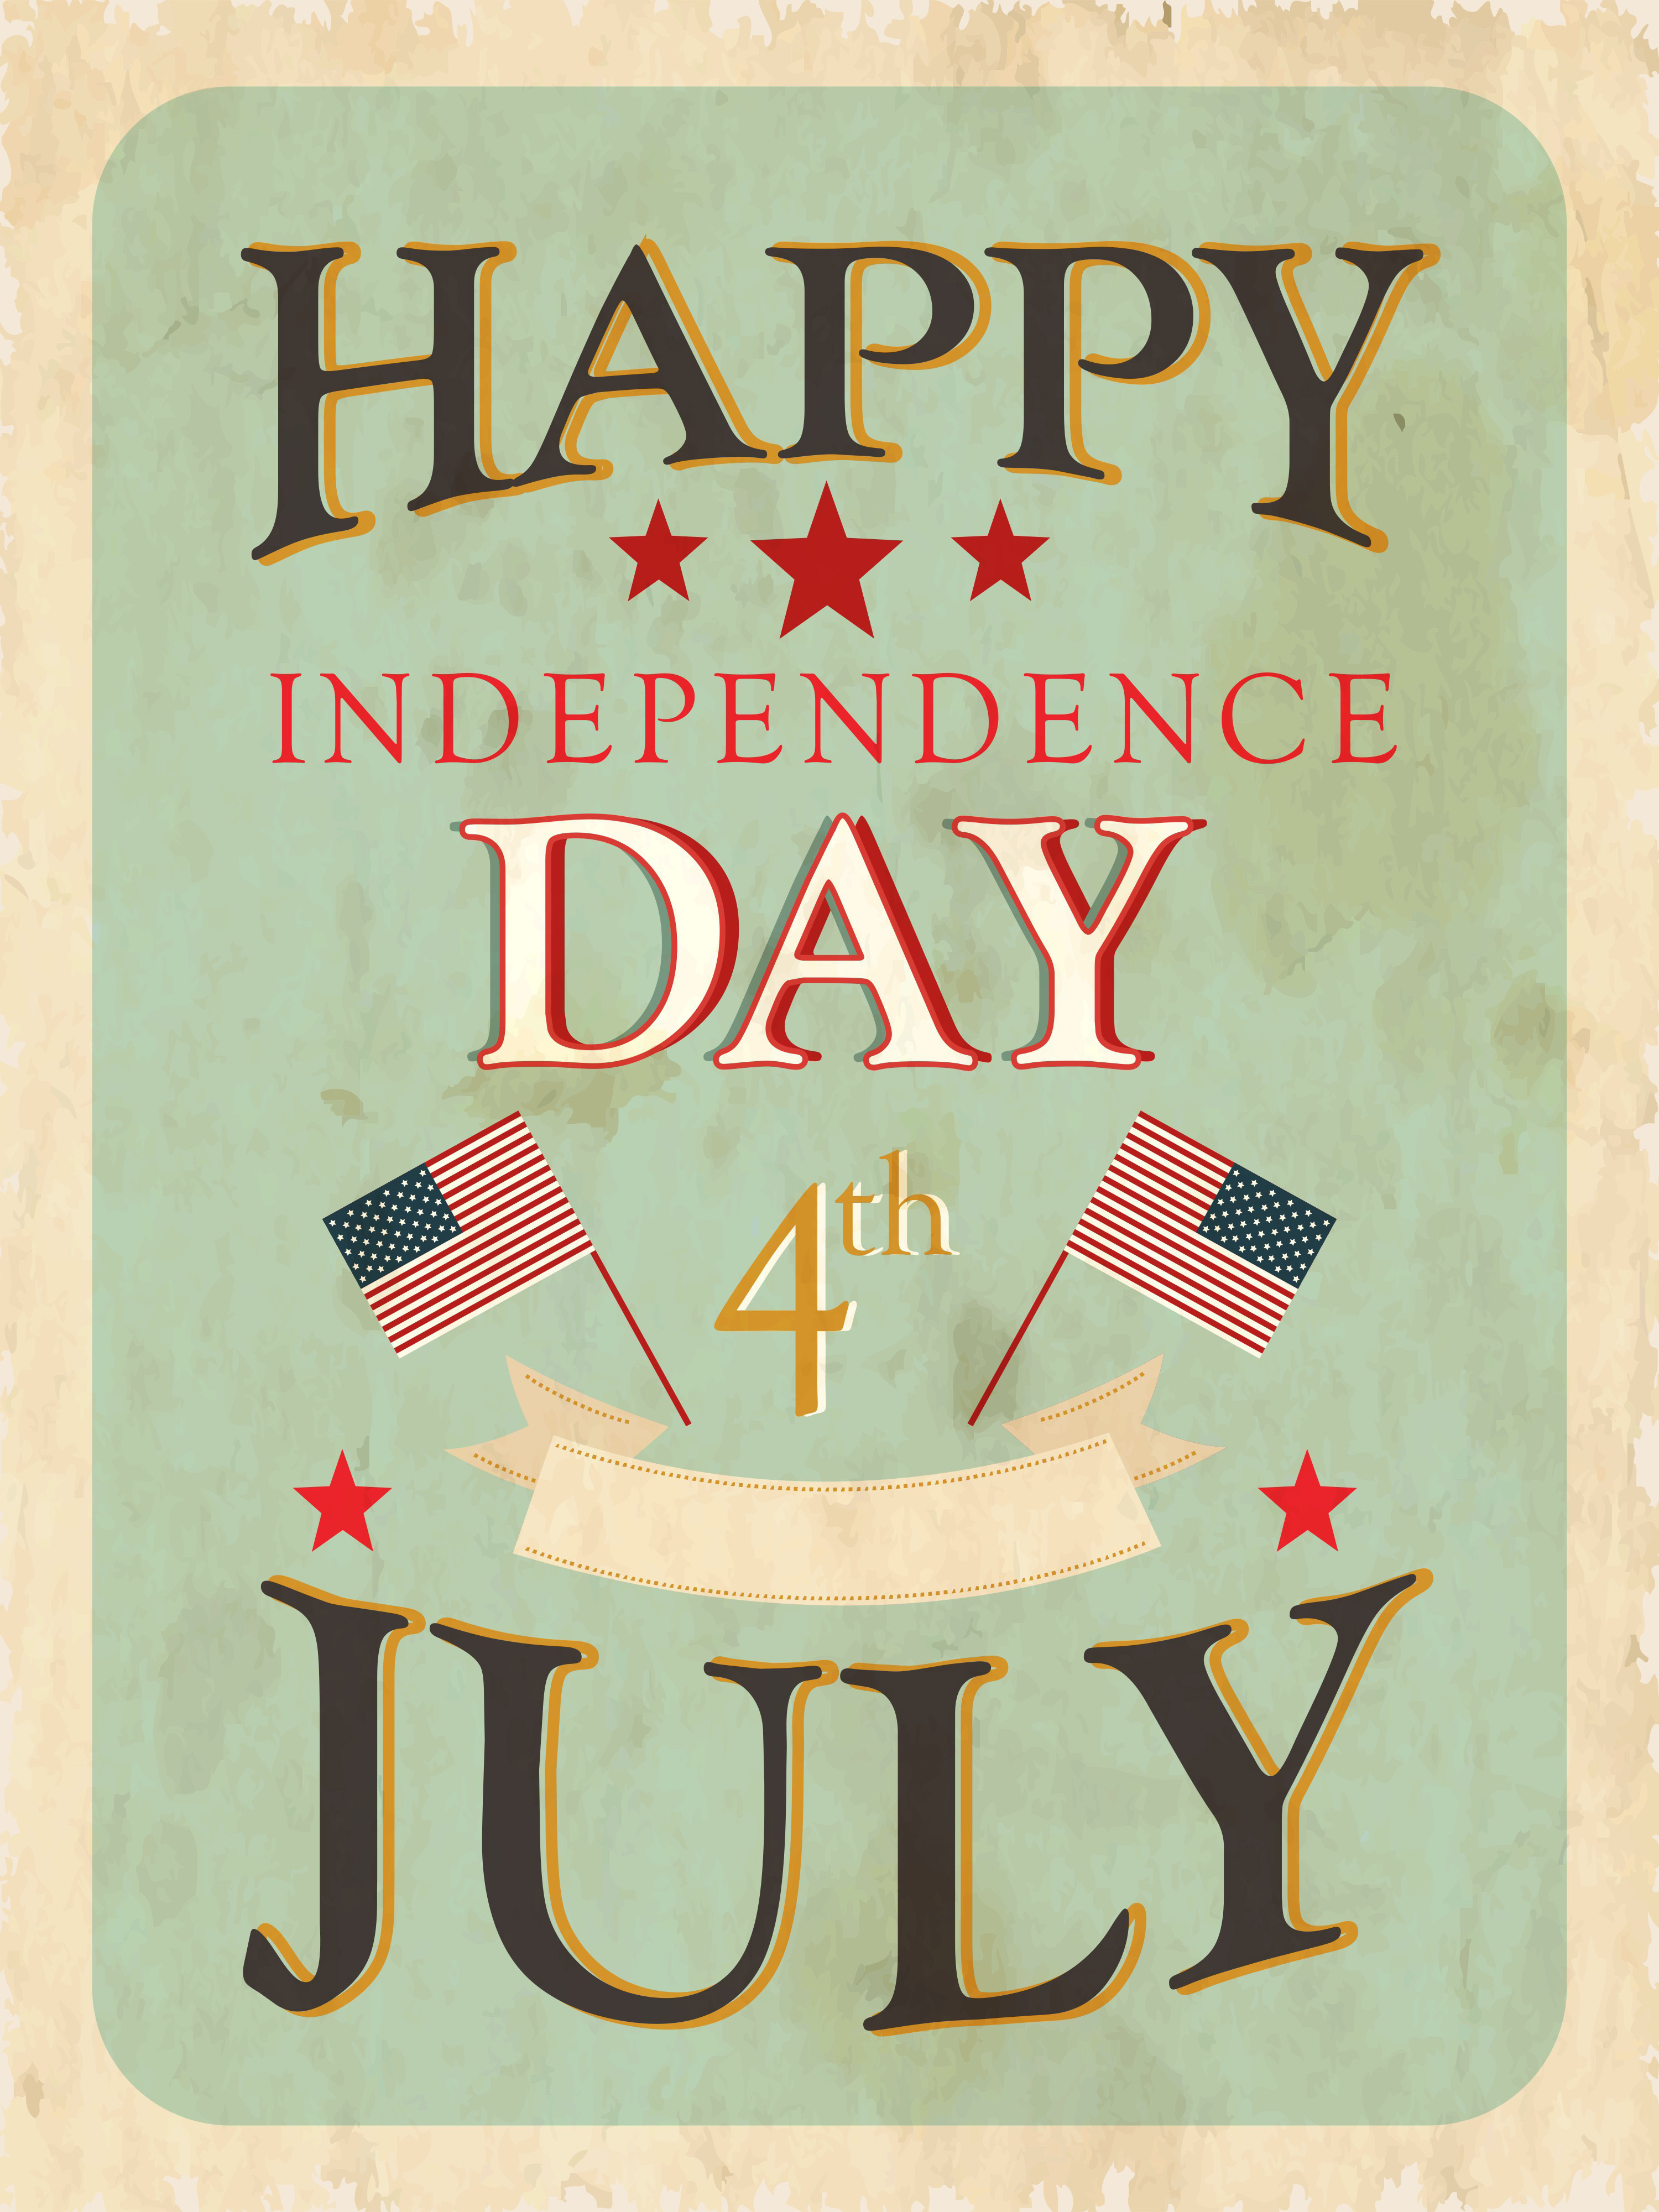 Here is a list of activities that you can do with your kids for the 4th of July.